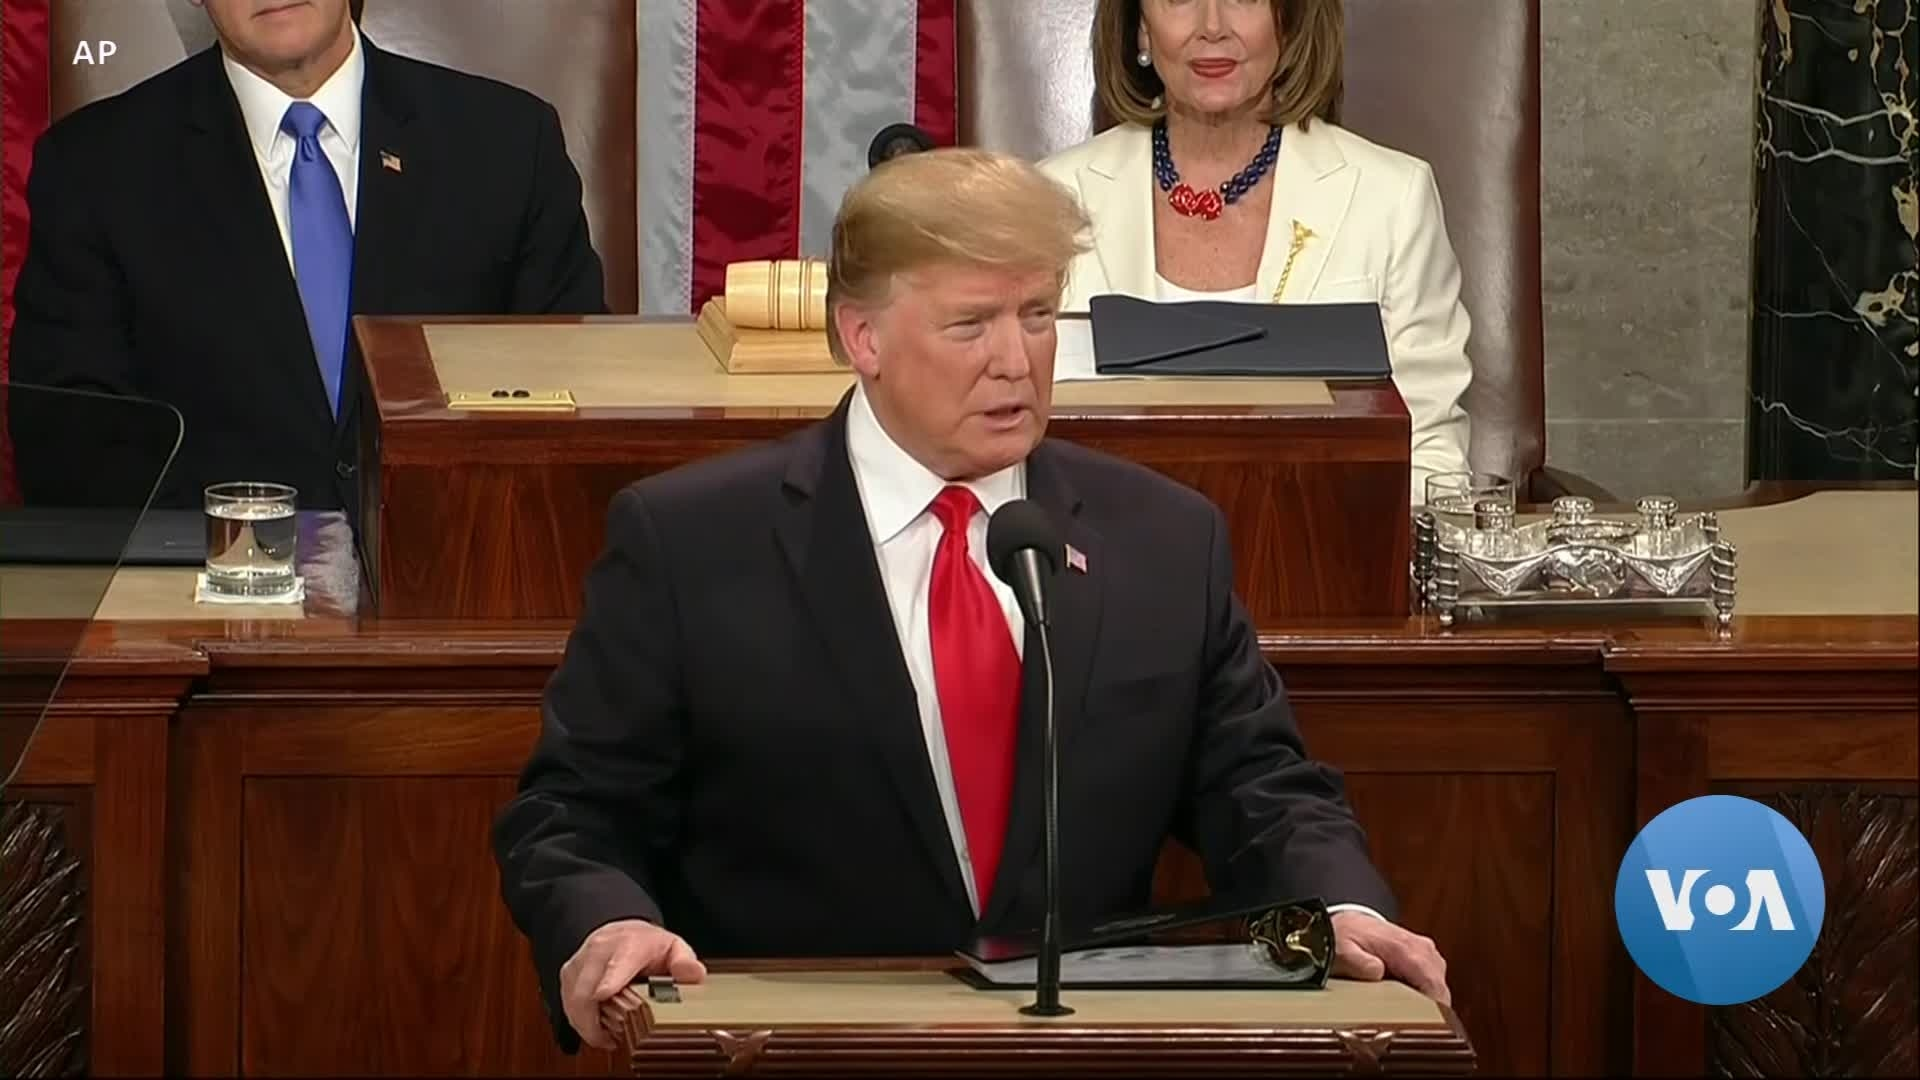 Trump's State of the Union Under Cloud of Impeachment